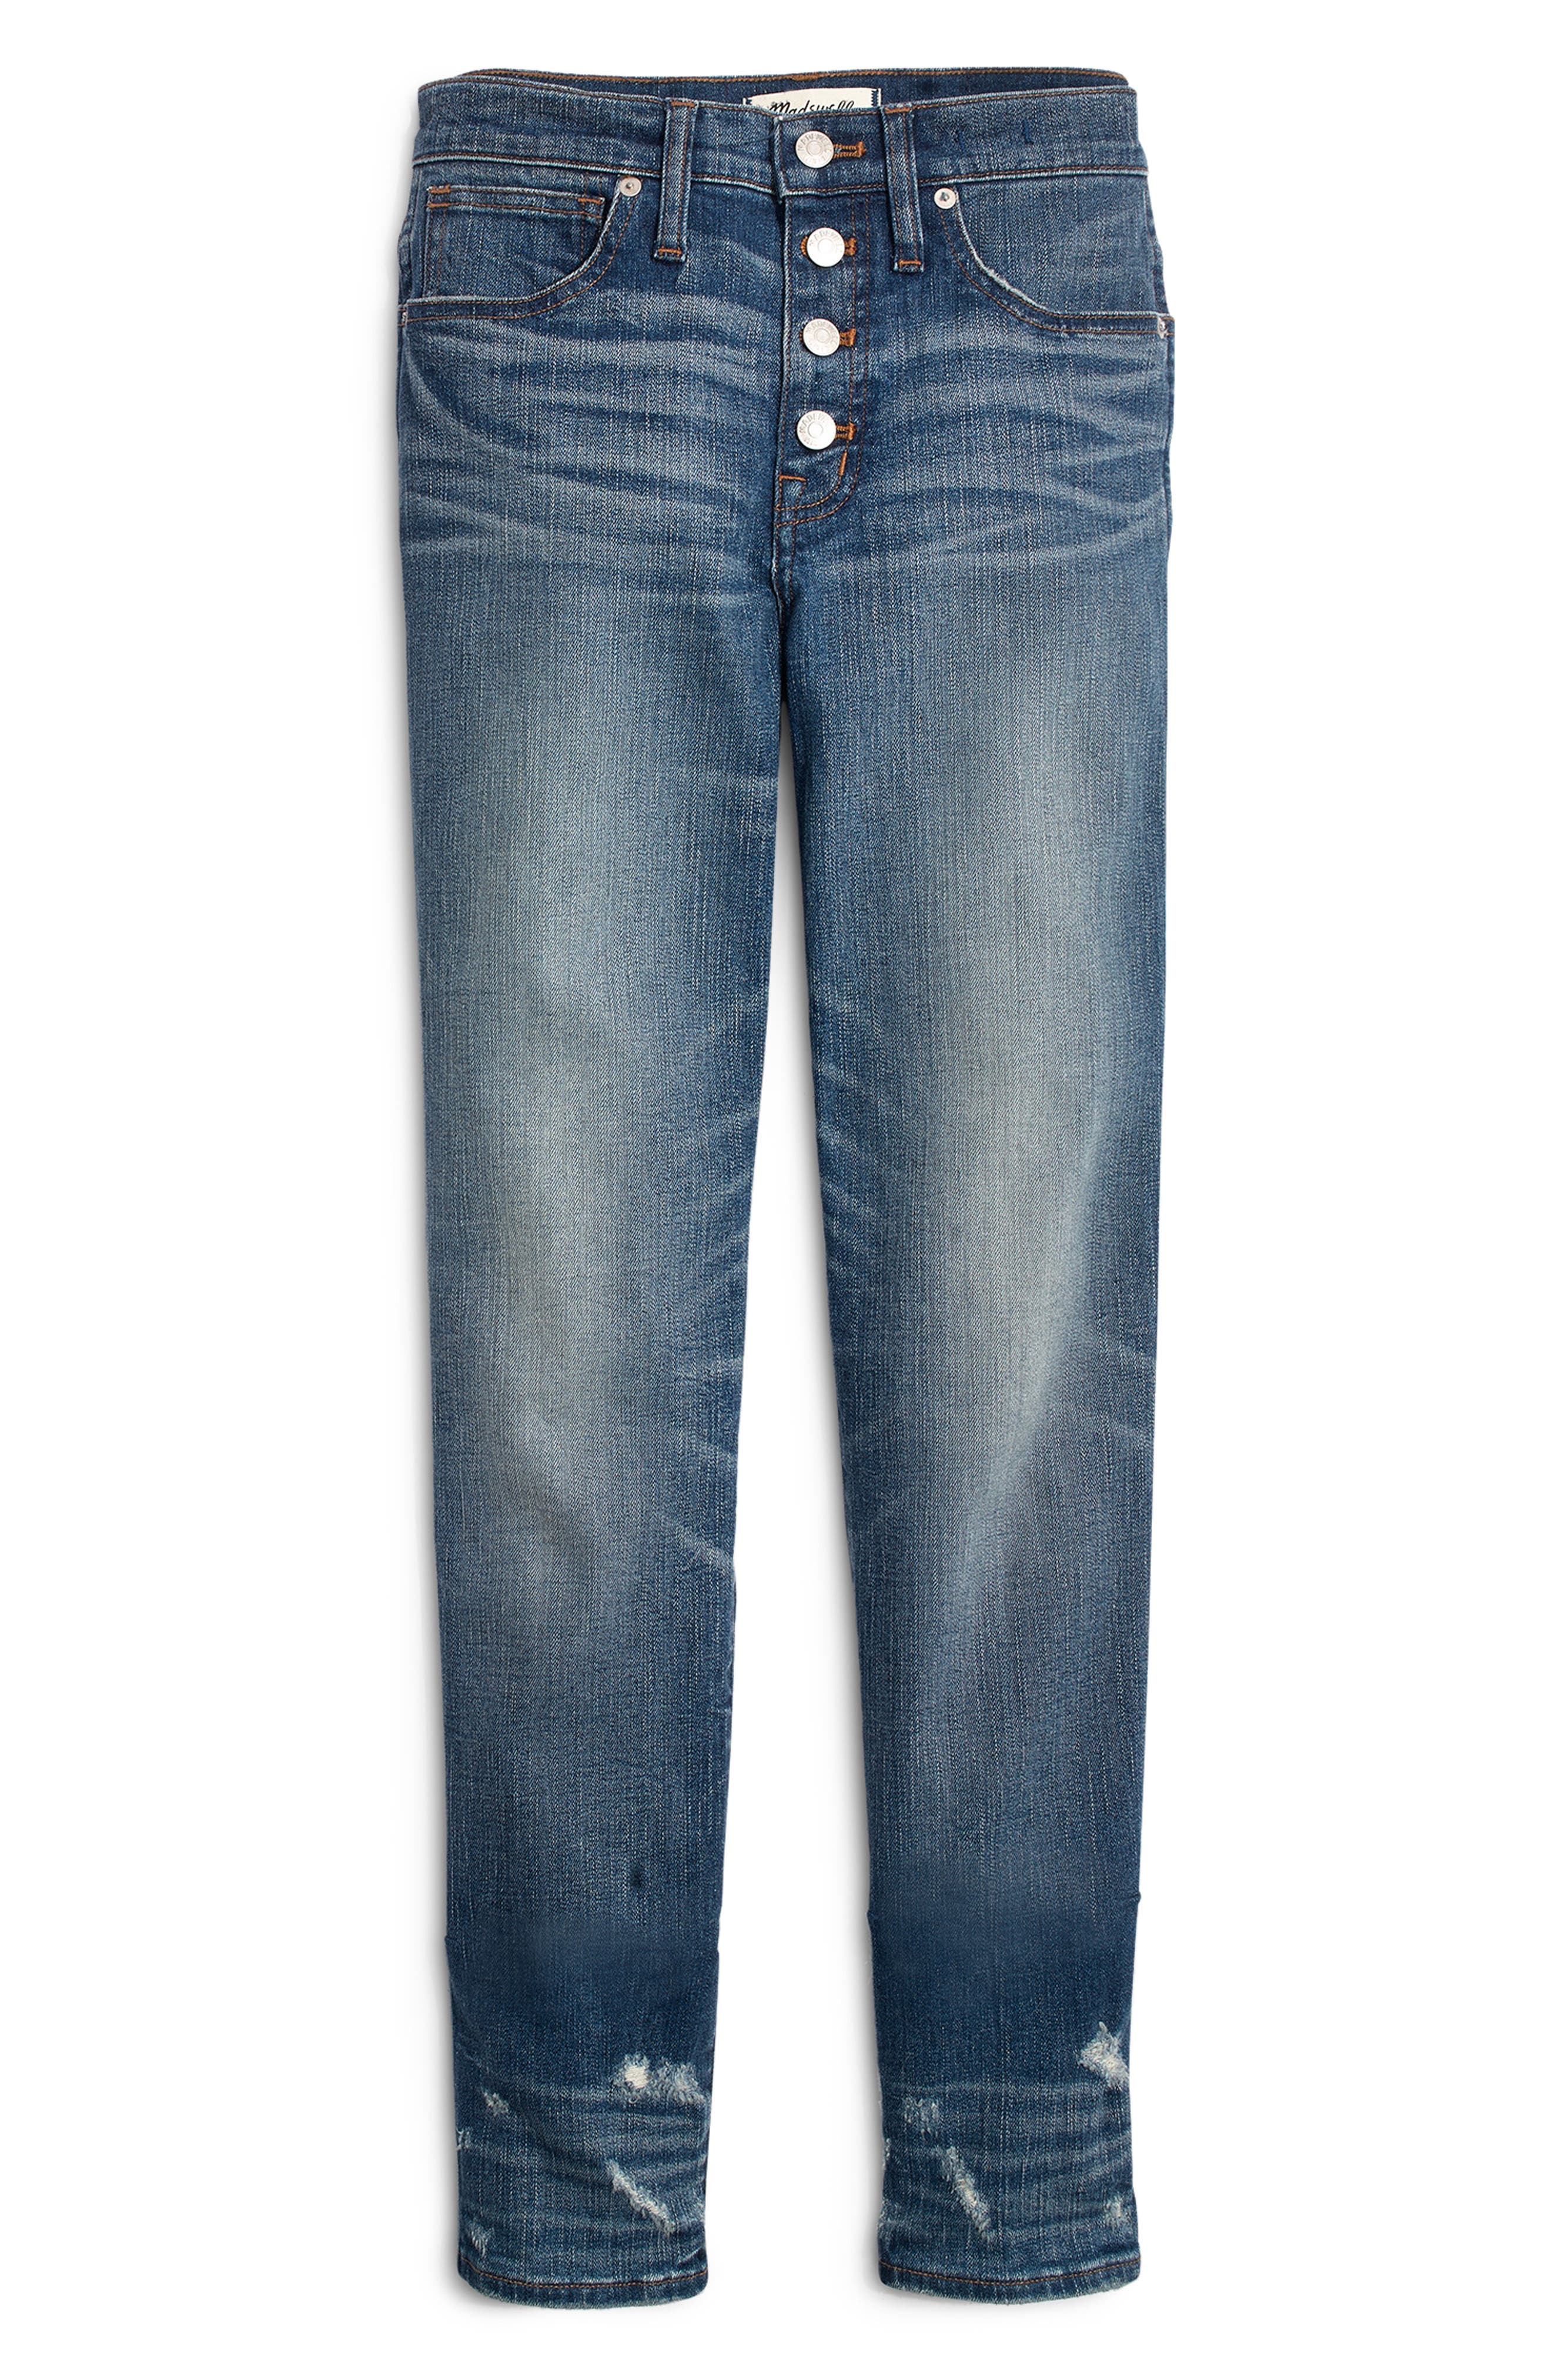 Distressed Button Front High Waist Slim Straight Jeans,                             Alternate thumbnail 4, color,                             CAROLINE